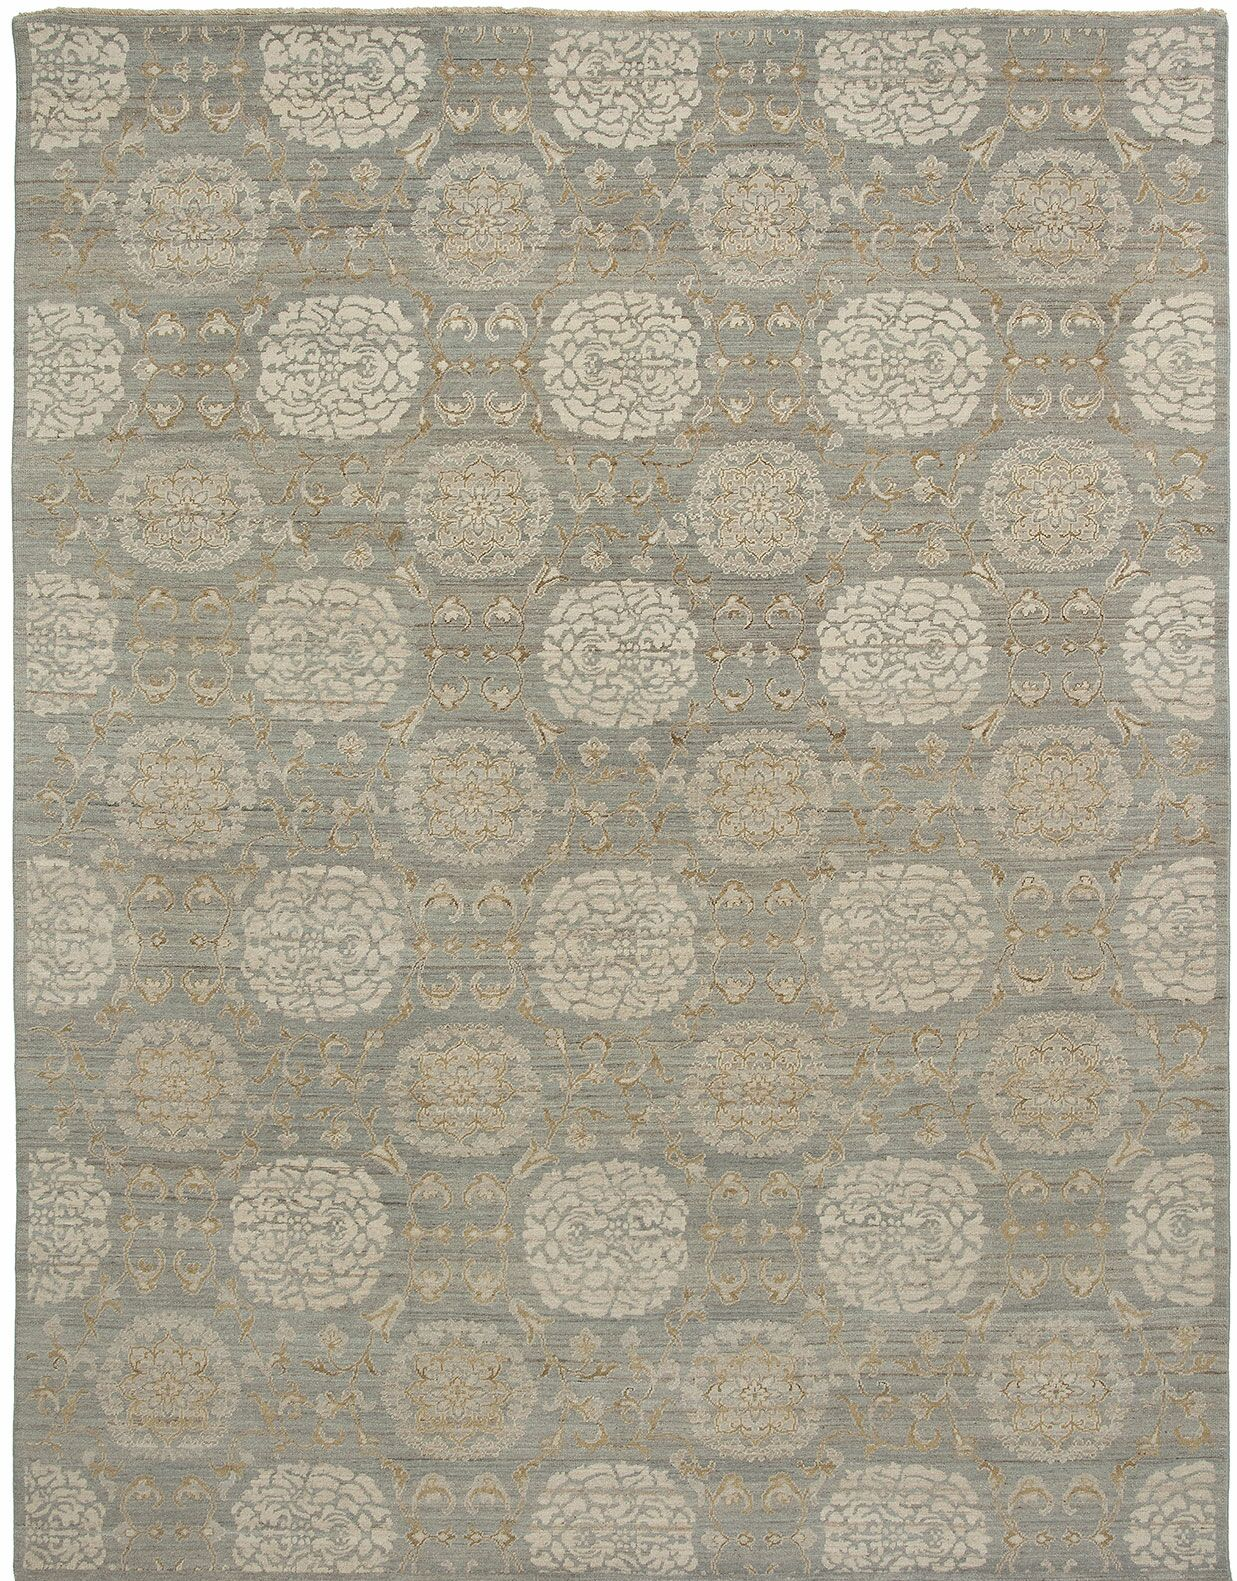 Alara Hand-Knotted Gray Area Rug Rug Size: 10' x 14'